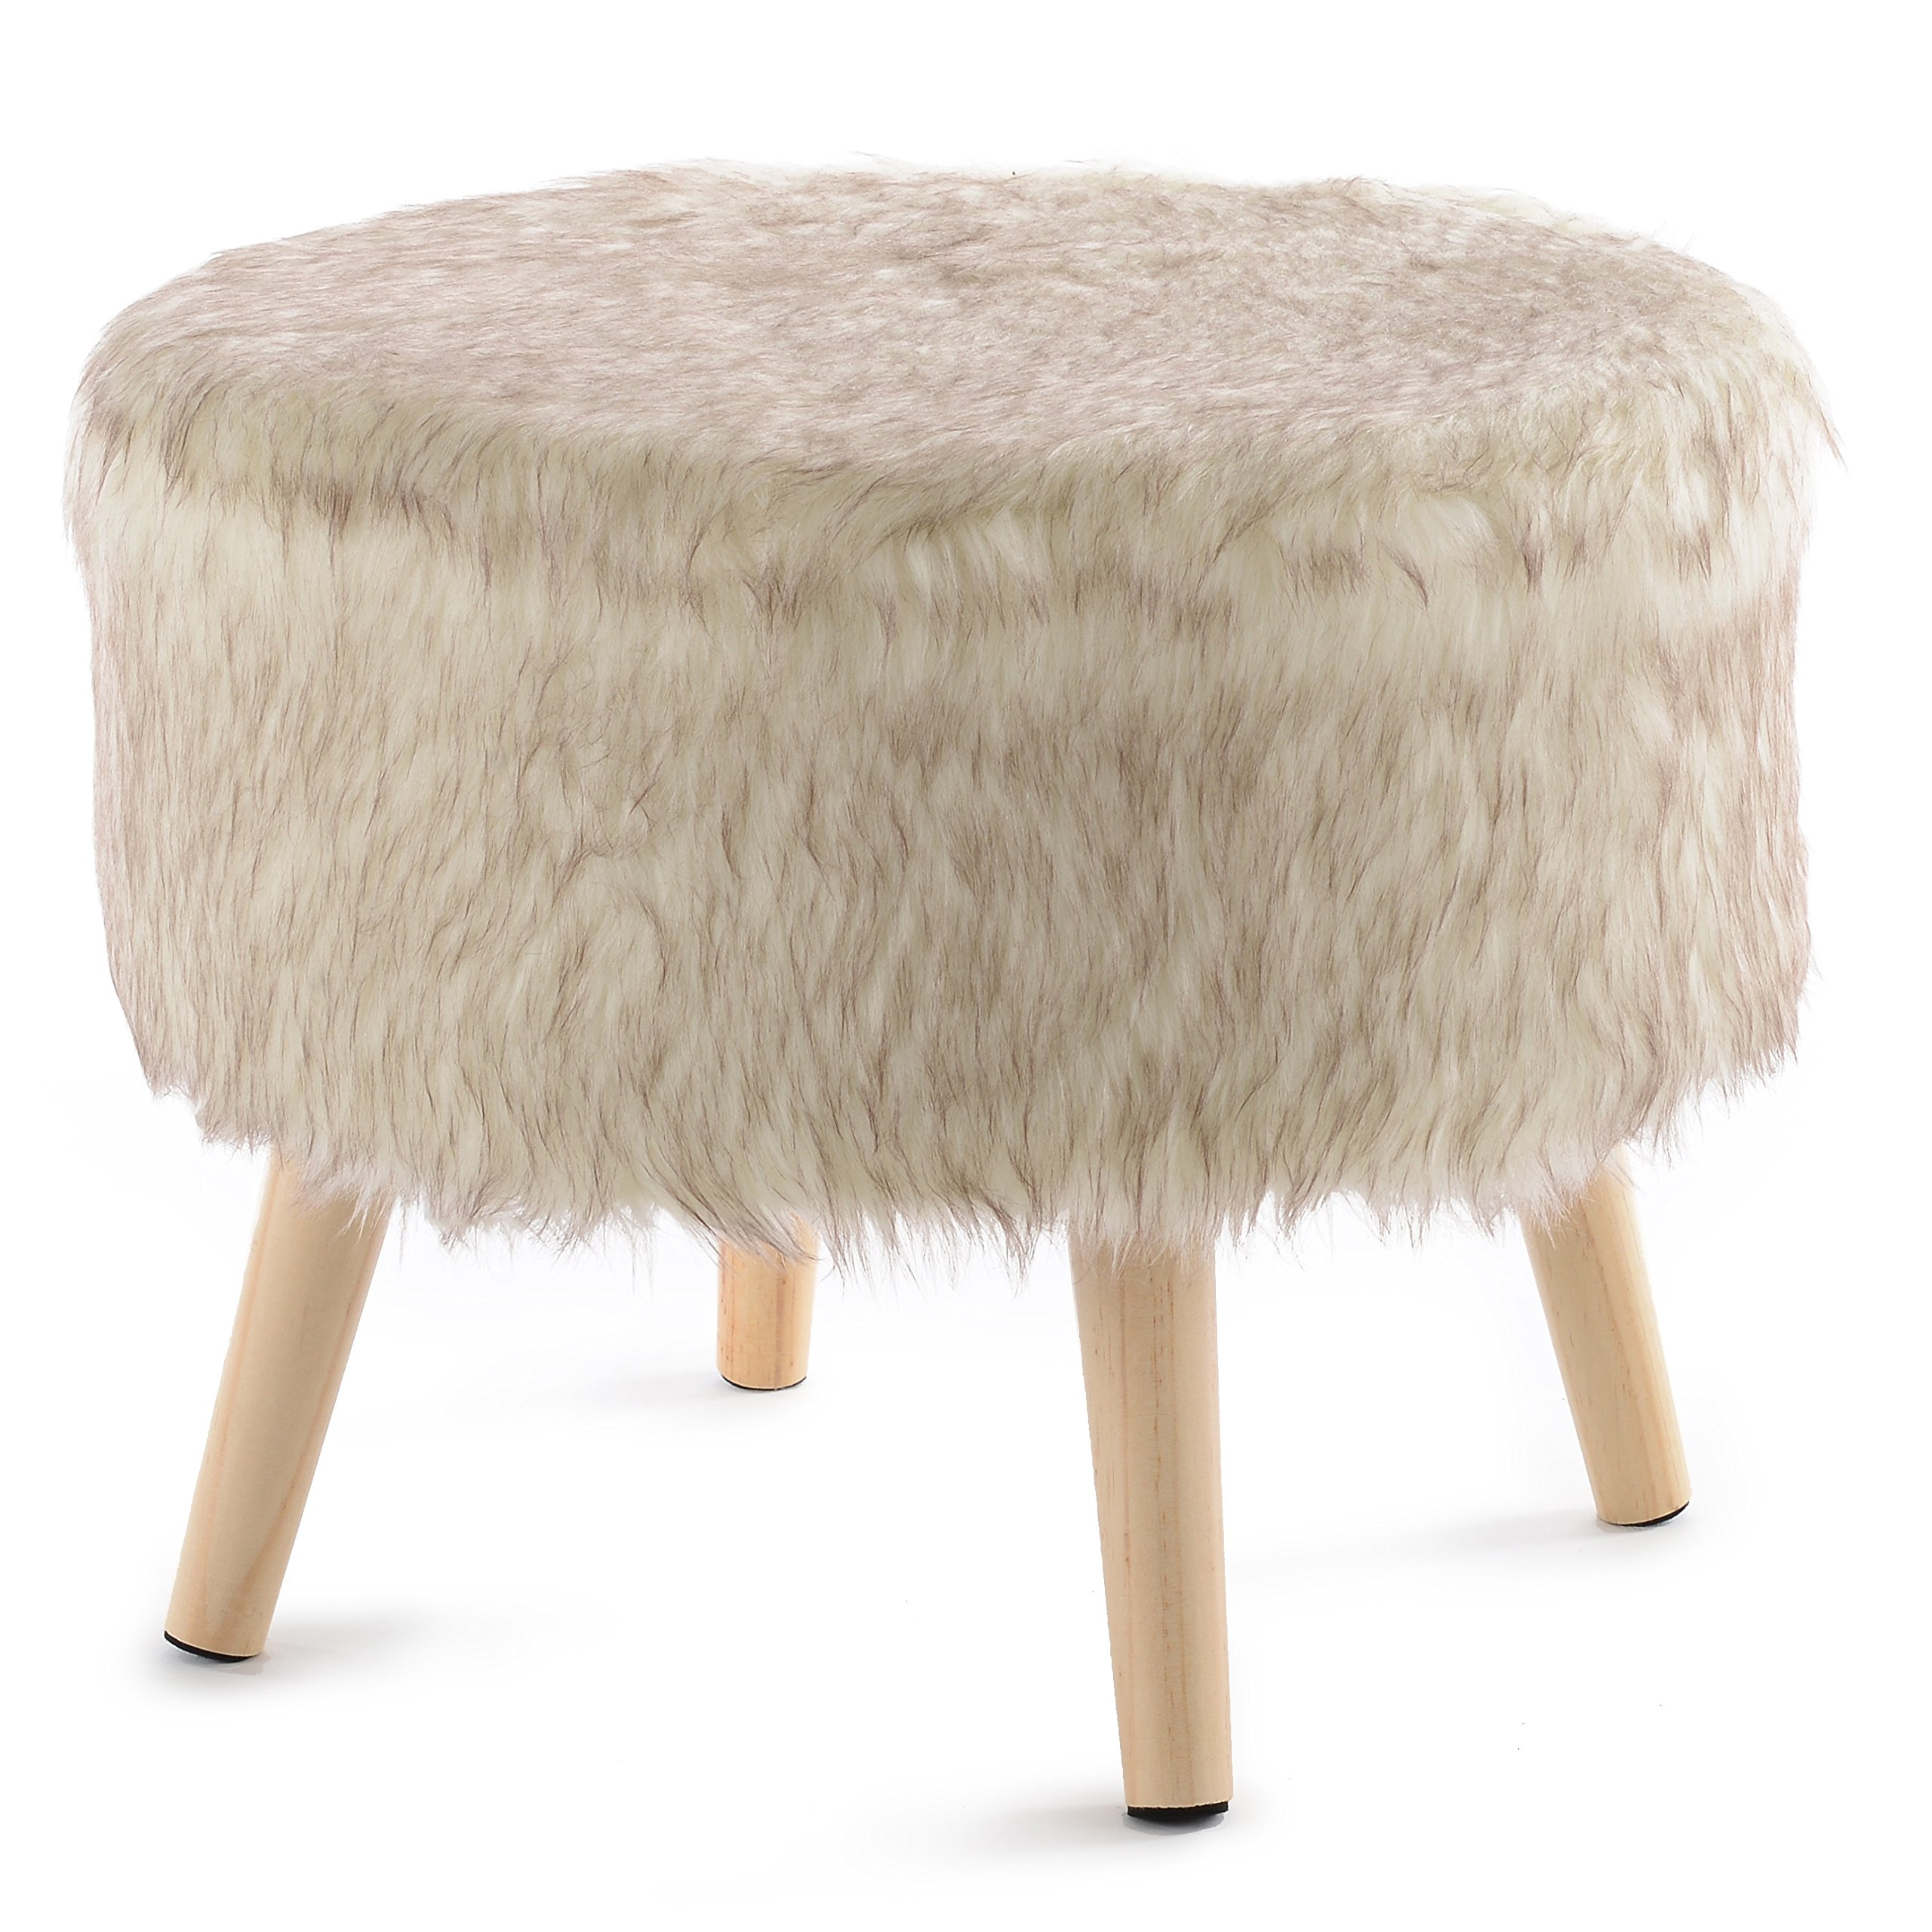 Cheer Collection 17'' Round Ottoman | Super Soft Decorative Tan Wolf Faux Fur Foot Stool with Wood Legs